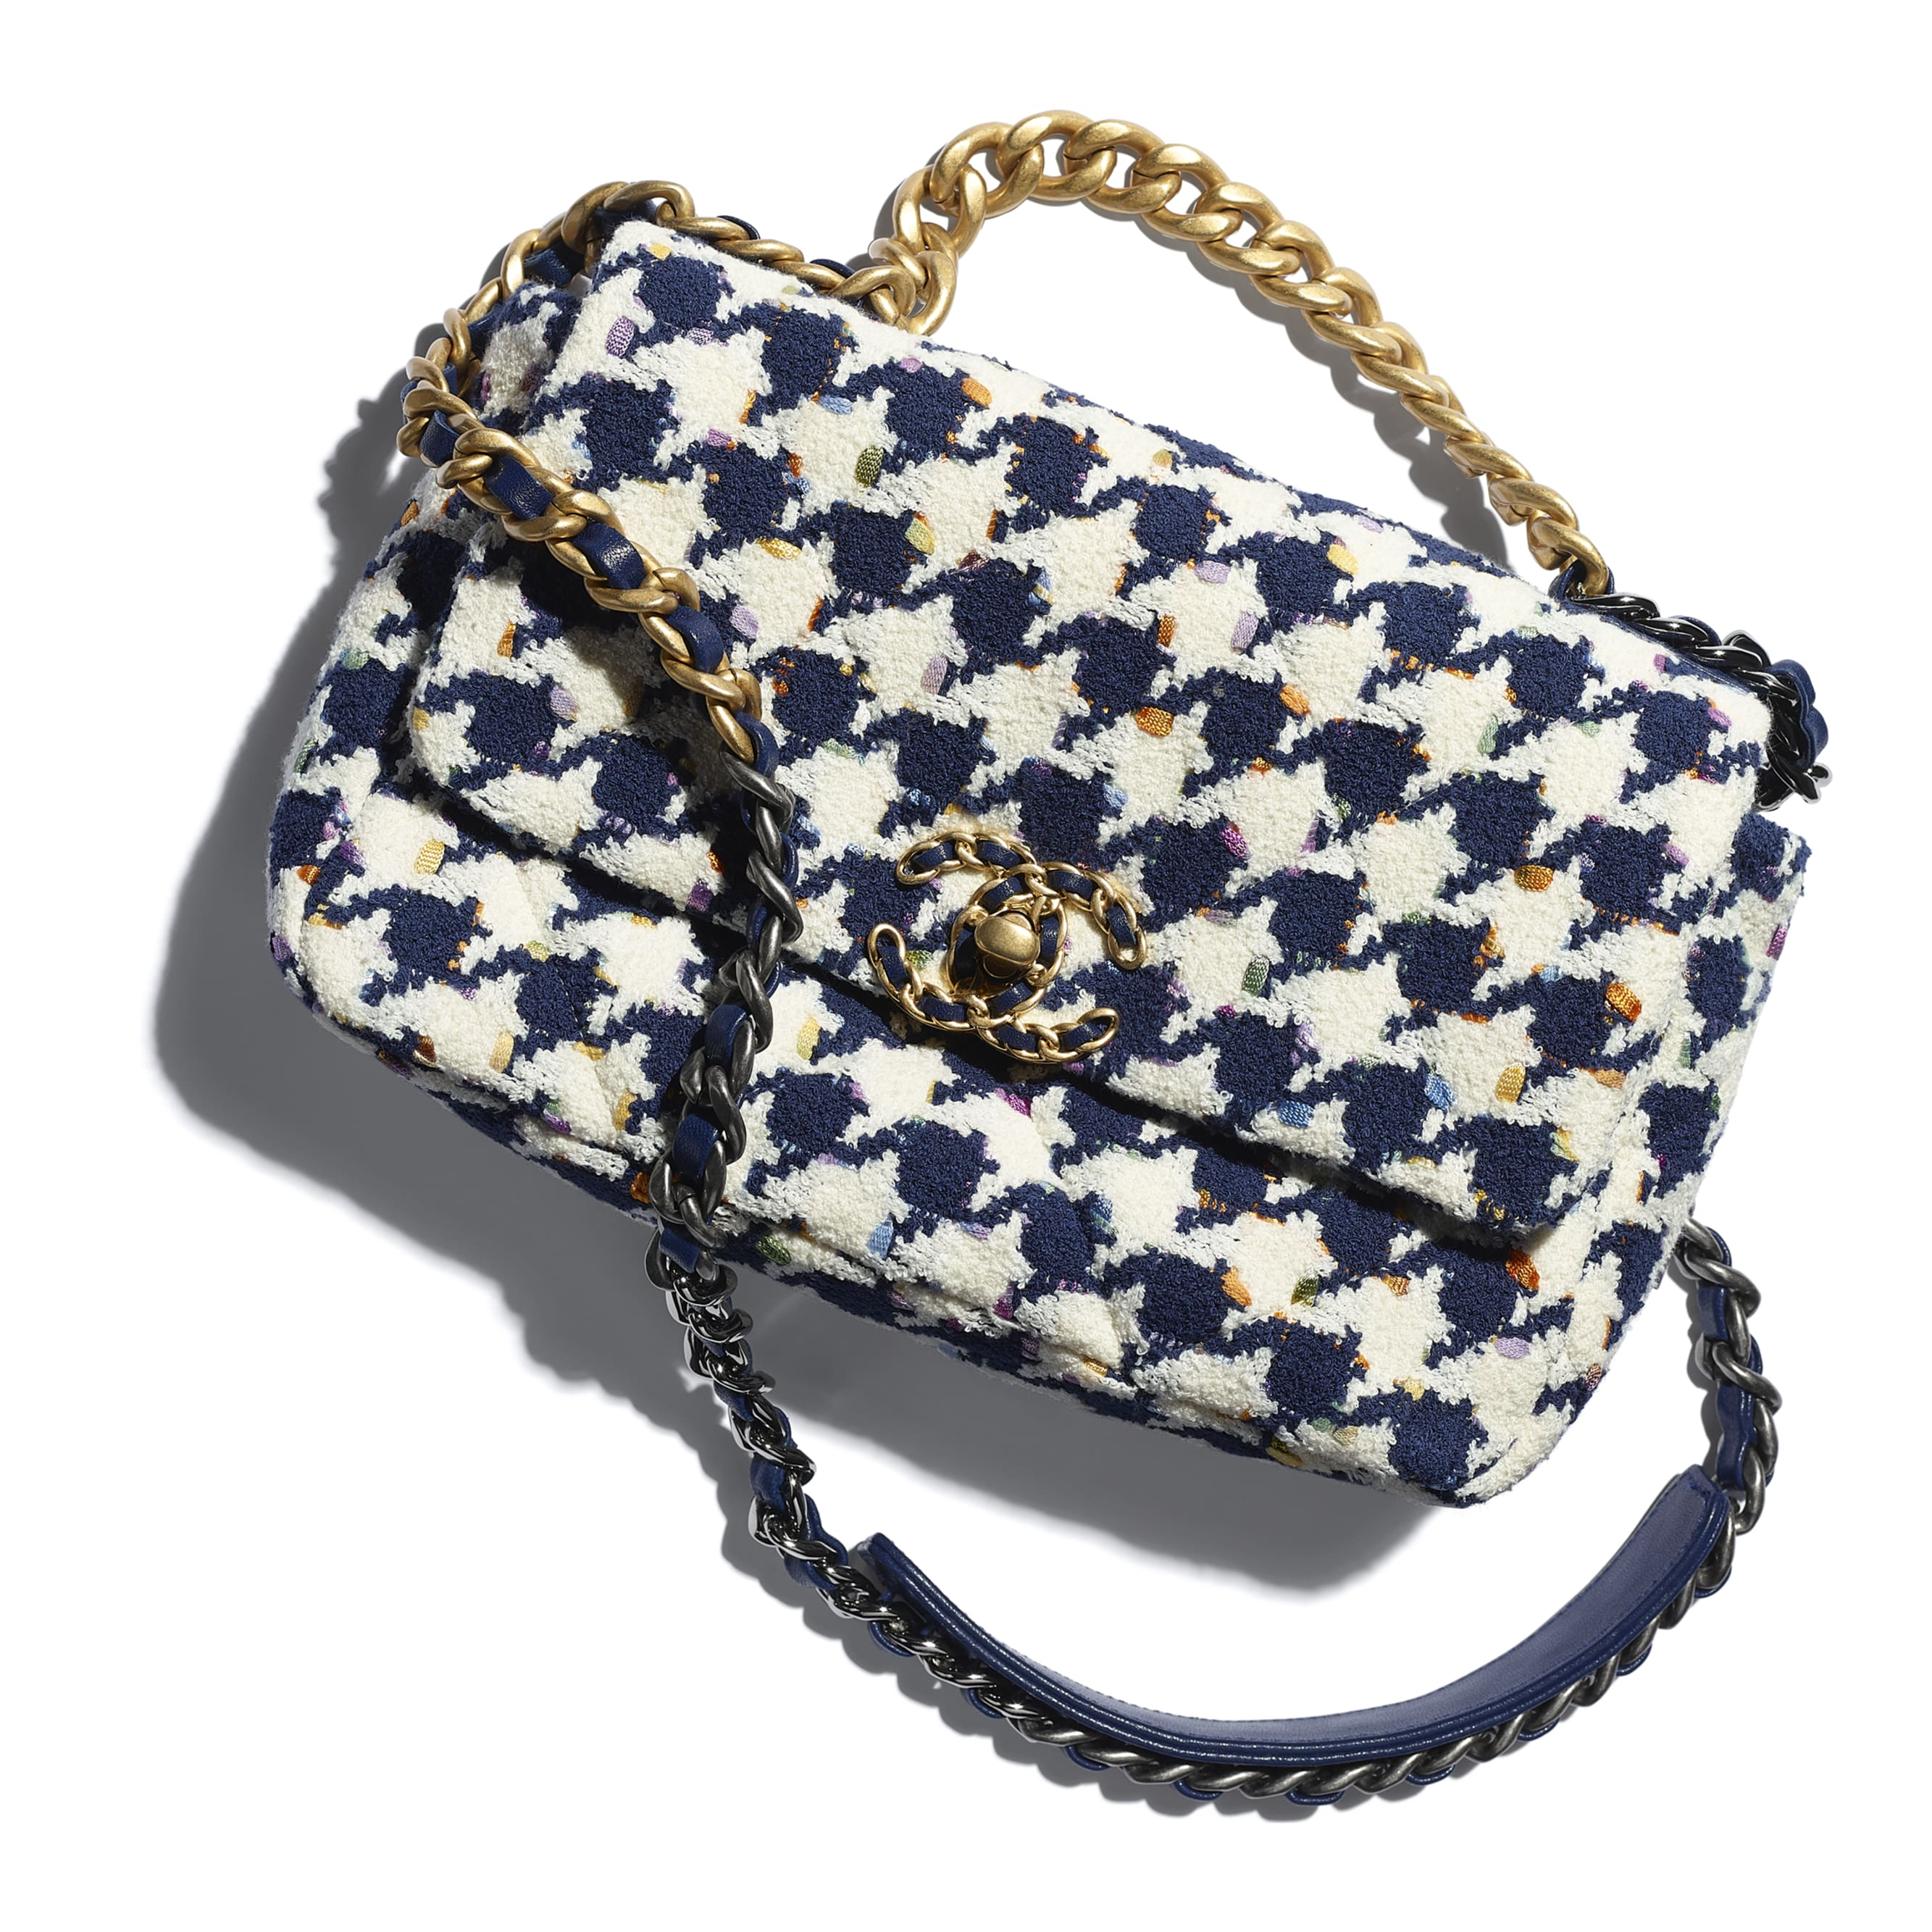 CHANEL 19 Flap Bag - Ecru, Navy Blue & Multicolour - Tweed, Gold-Tone, Silver-Tone & Ruthenium-Finish Metal - CHANEL - Extra view - see standard sized version